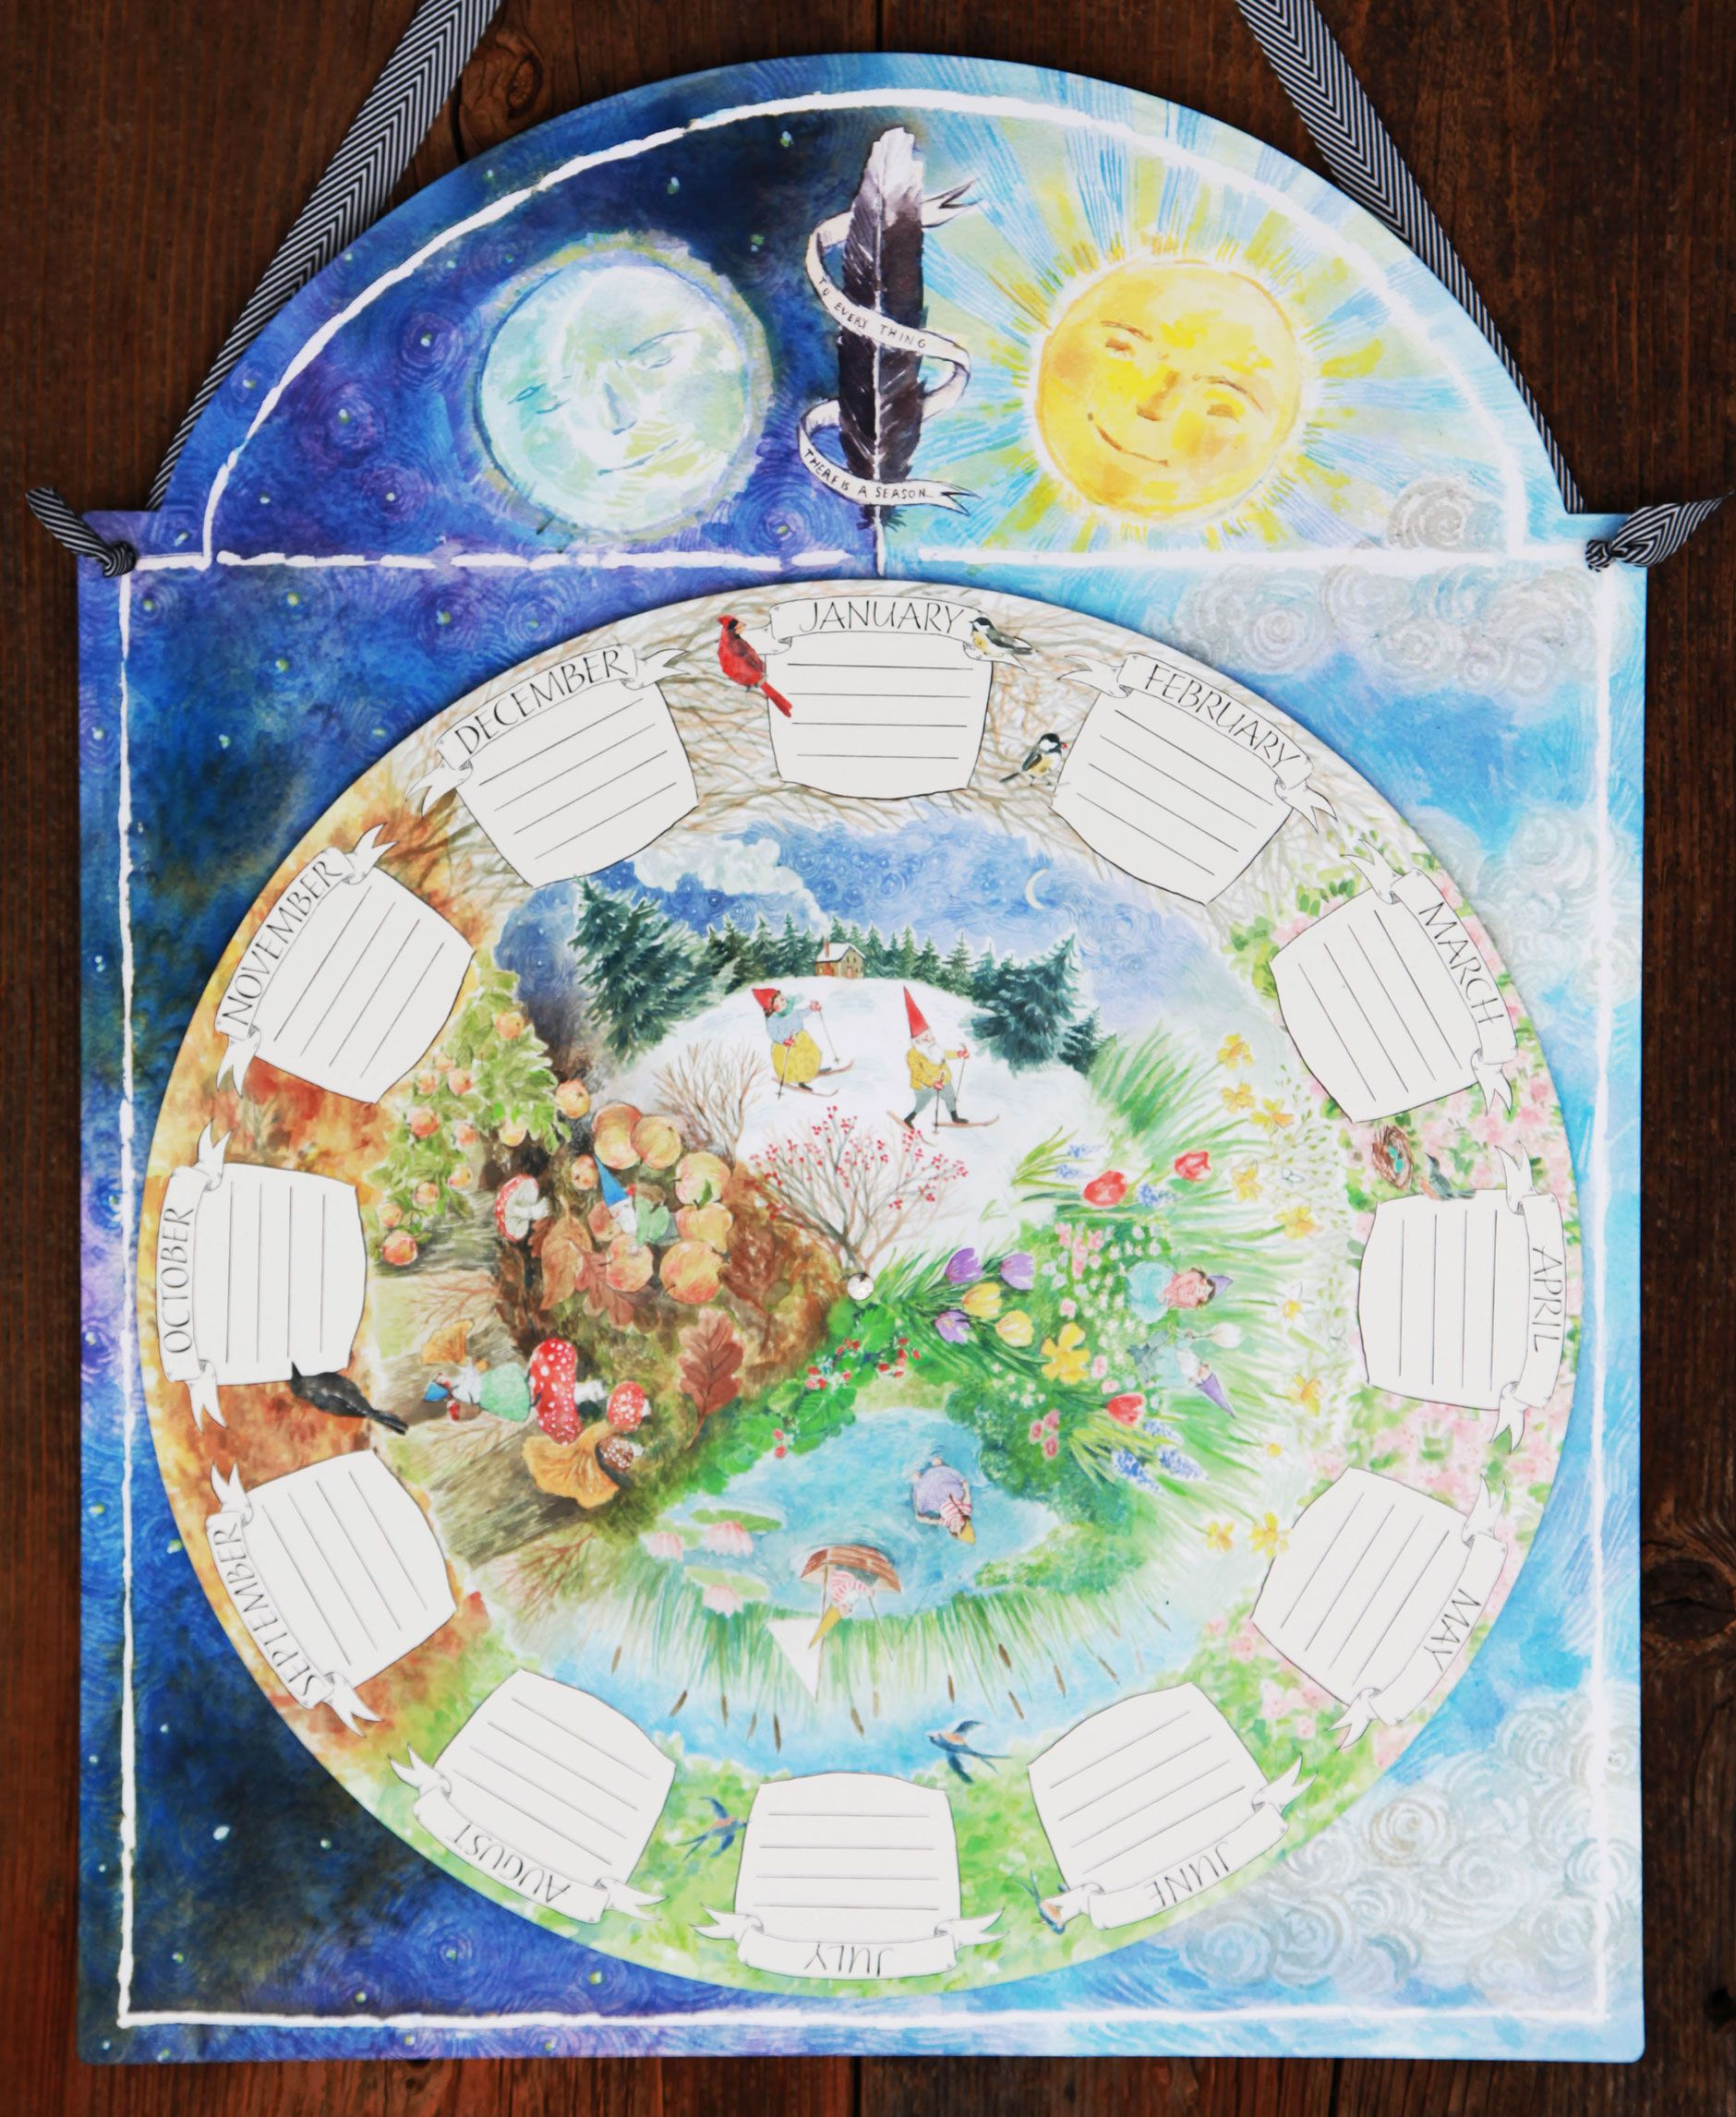 Seasons Calendar Kids : A child s calendar wall mounted spins to show progression